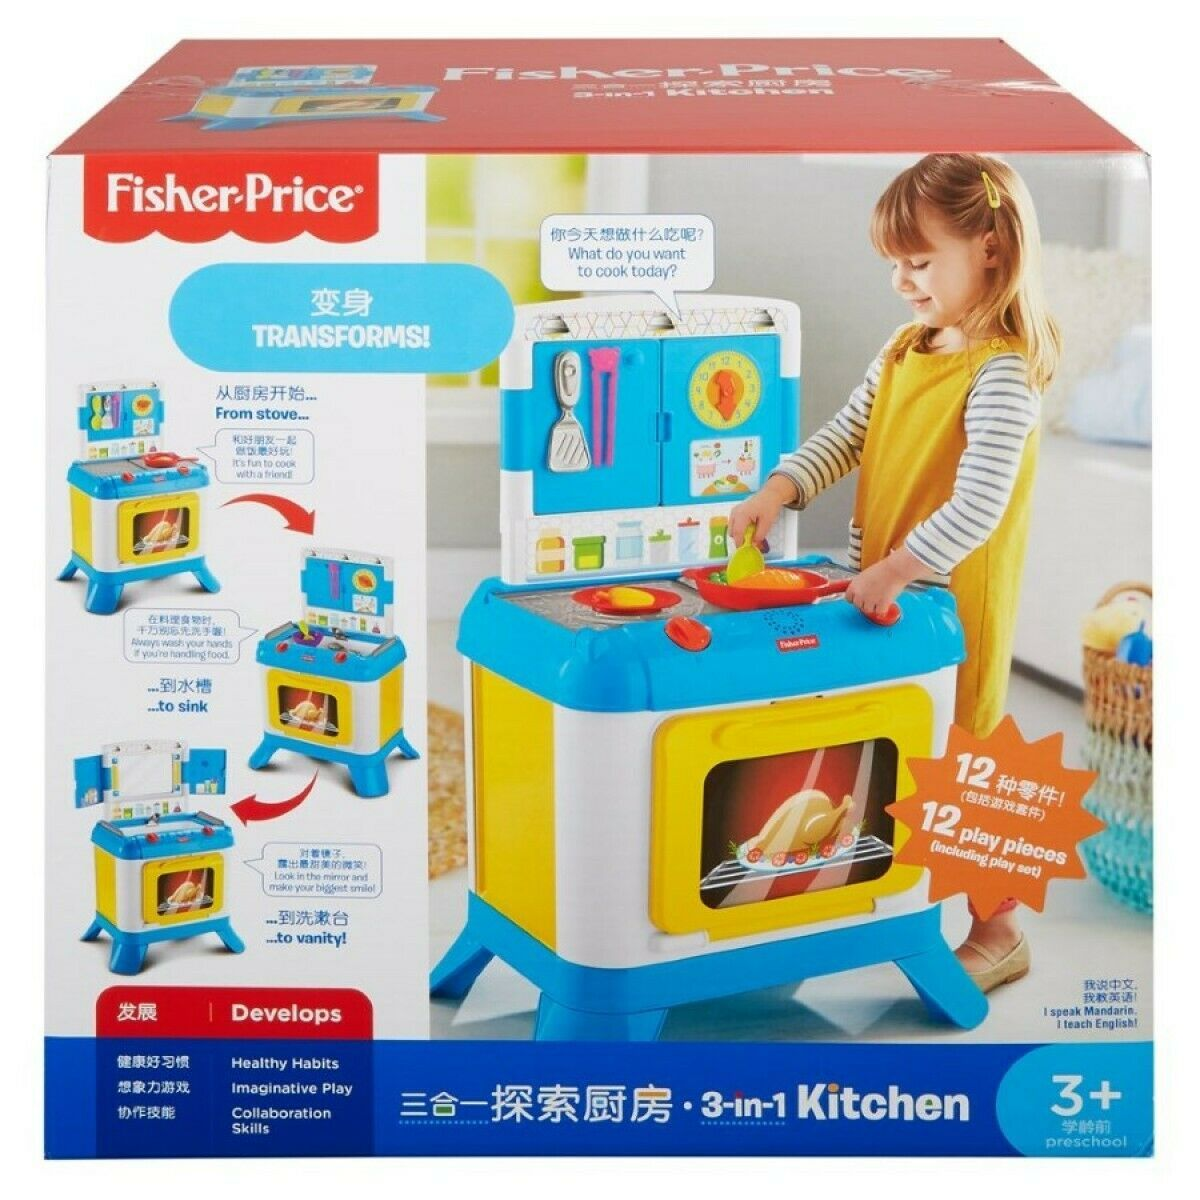 Kitchen Playsets Business Industry Science Fisher Price Servin Surprises 2in1 Toy Kitchen Cooker Hob Table Childrens Role Play Kids Pretend Playset New